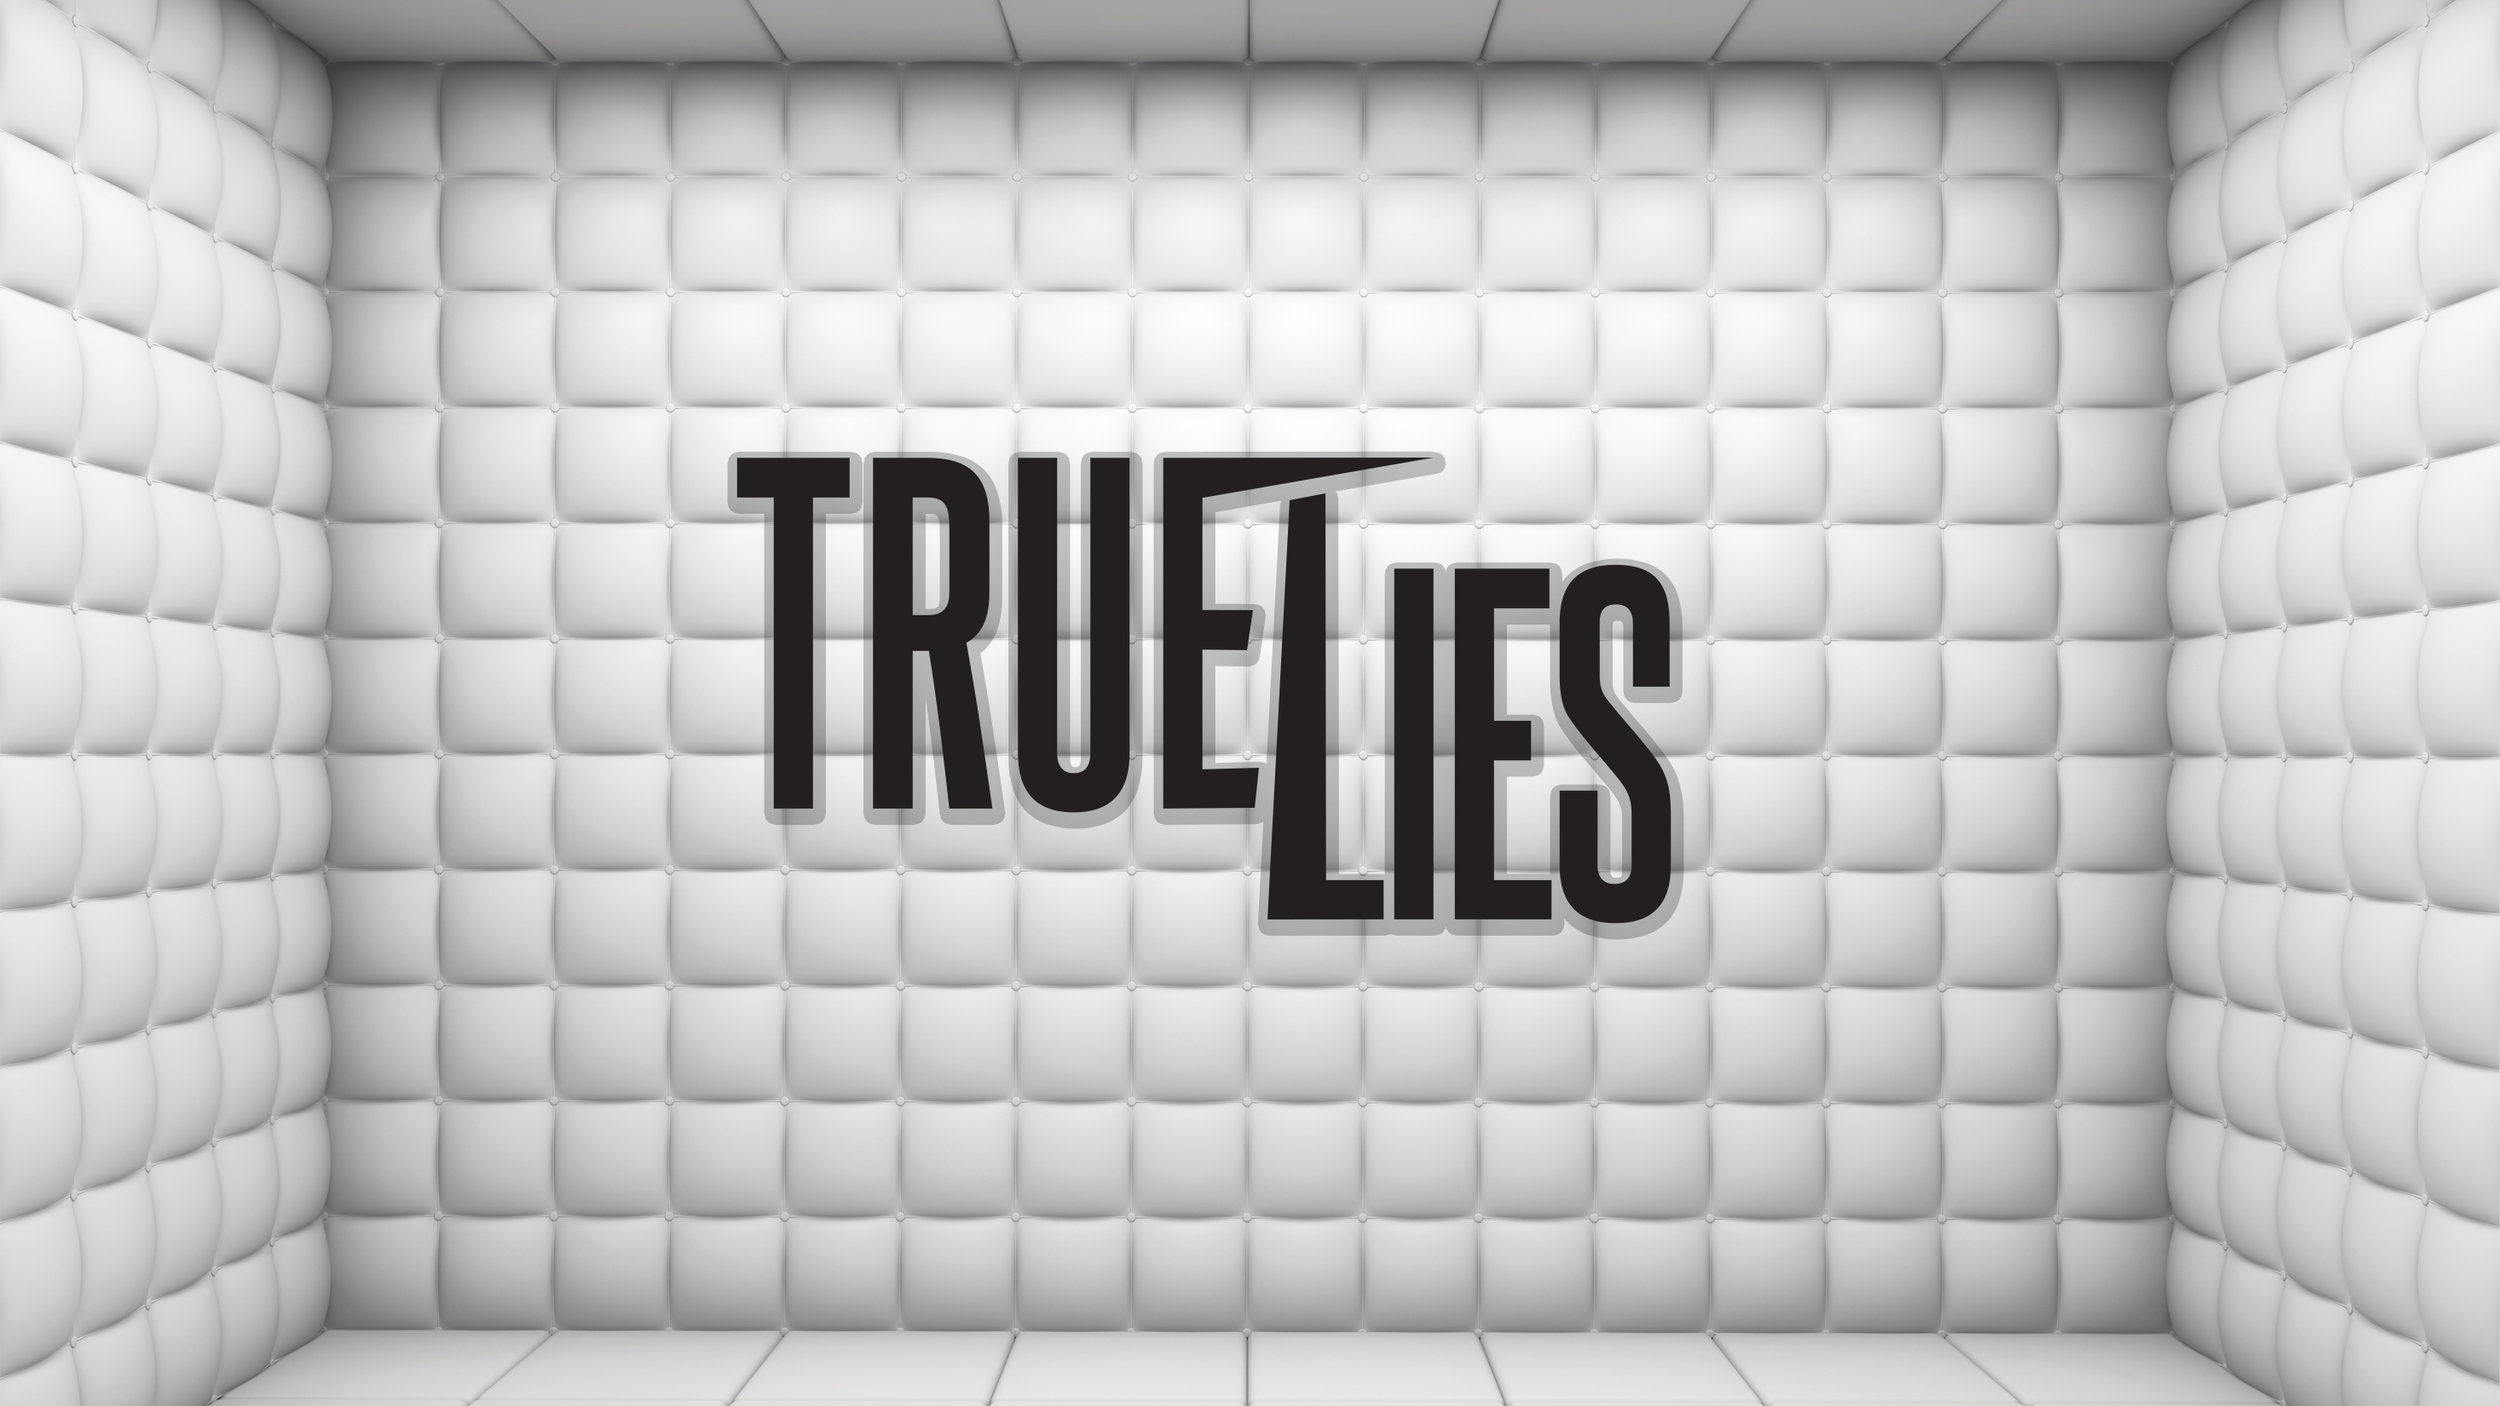 TrueLies_Cover_Final.jpg